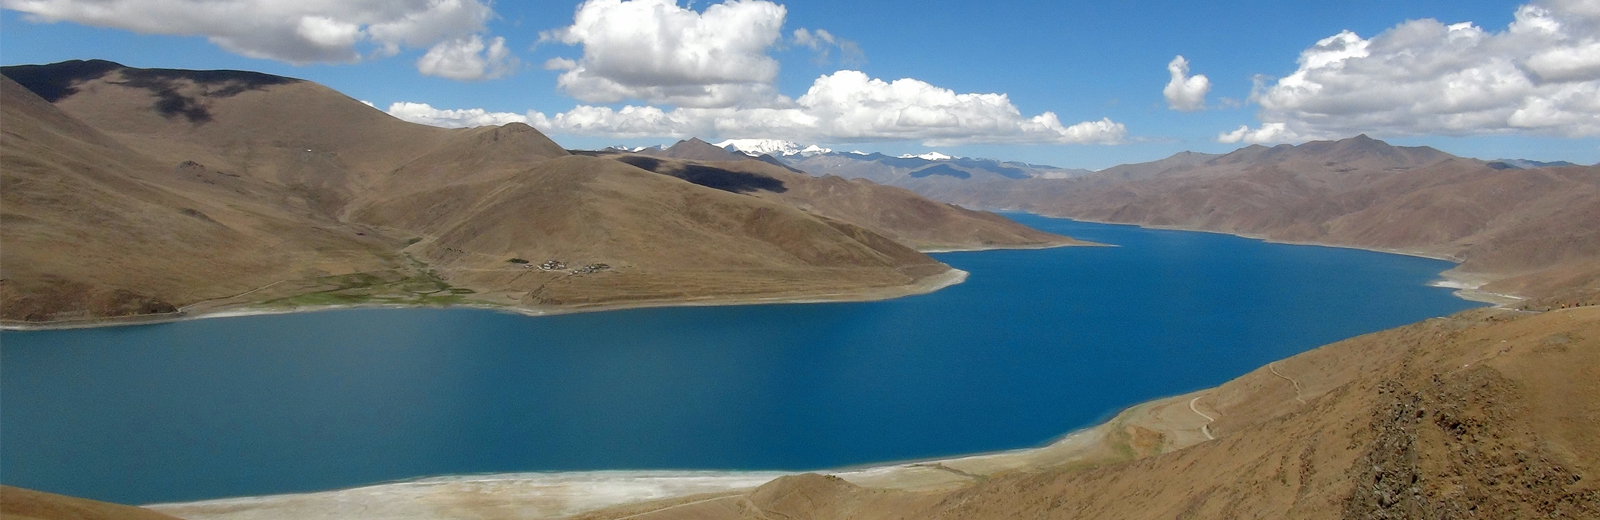 Tibet Tour with Eco Trip Nepal